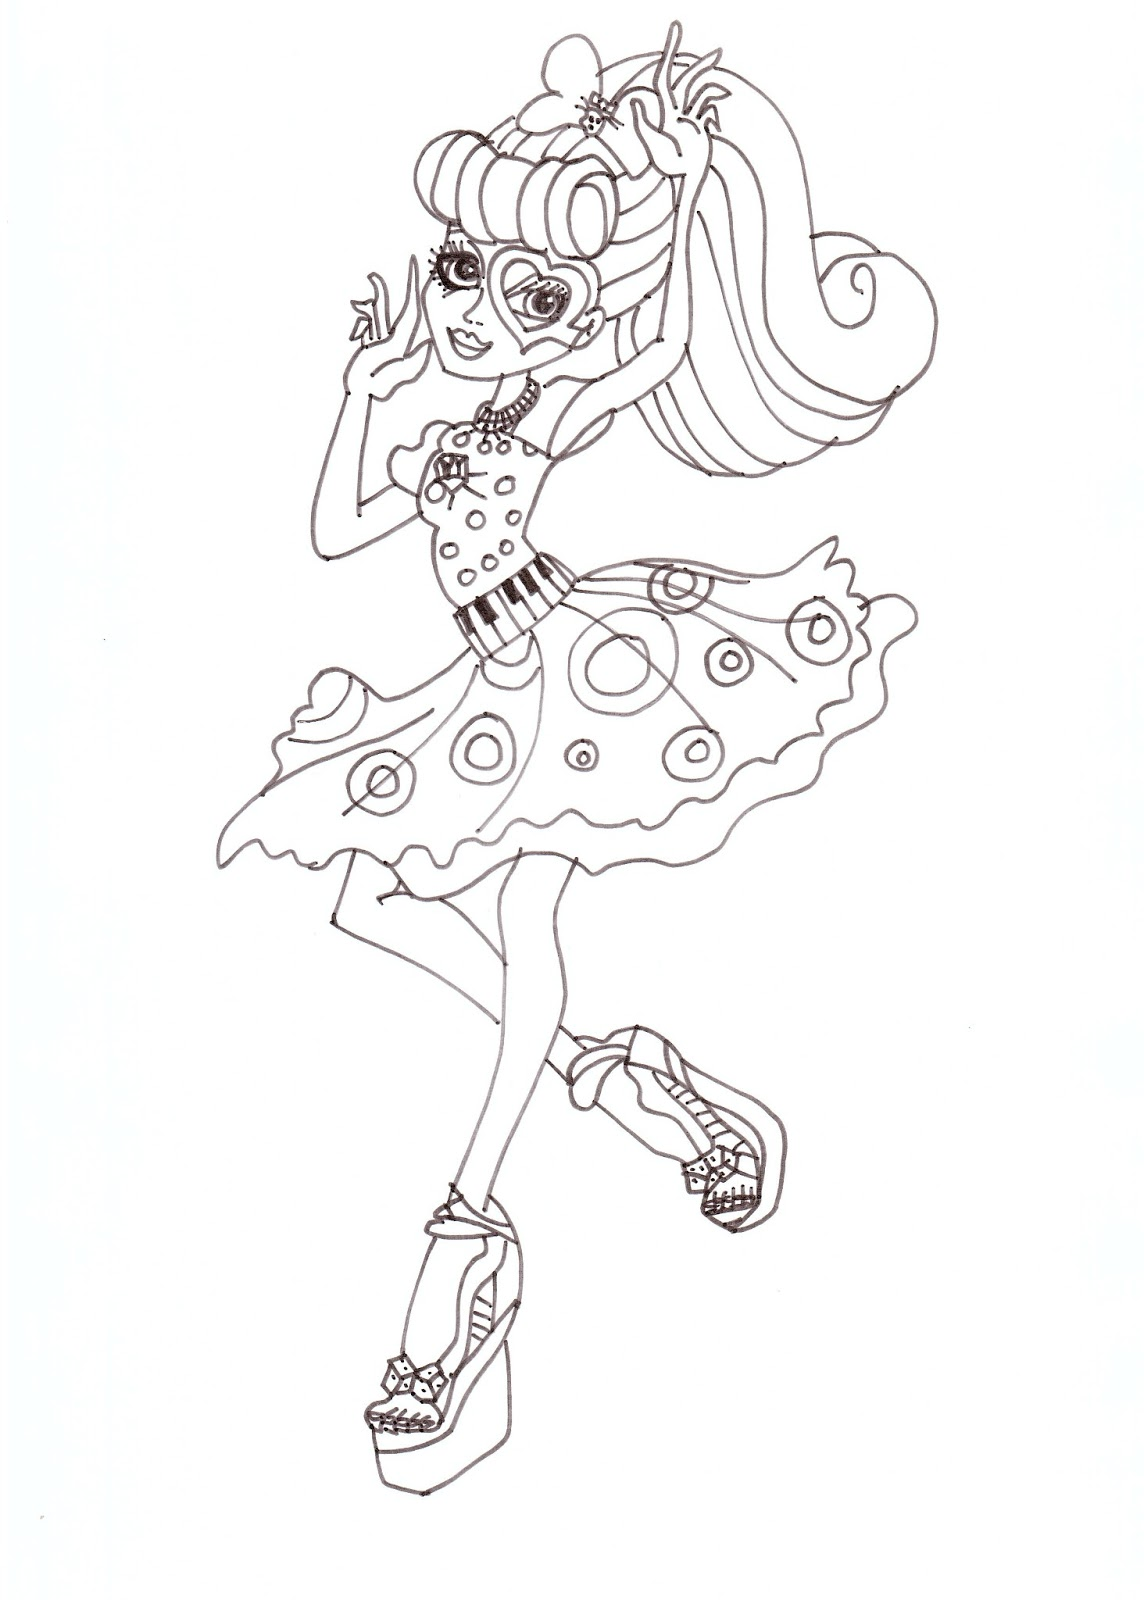 Free Printable Monster High Coloring Pages: Operetta Dot Dead ...